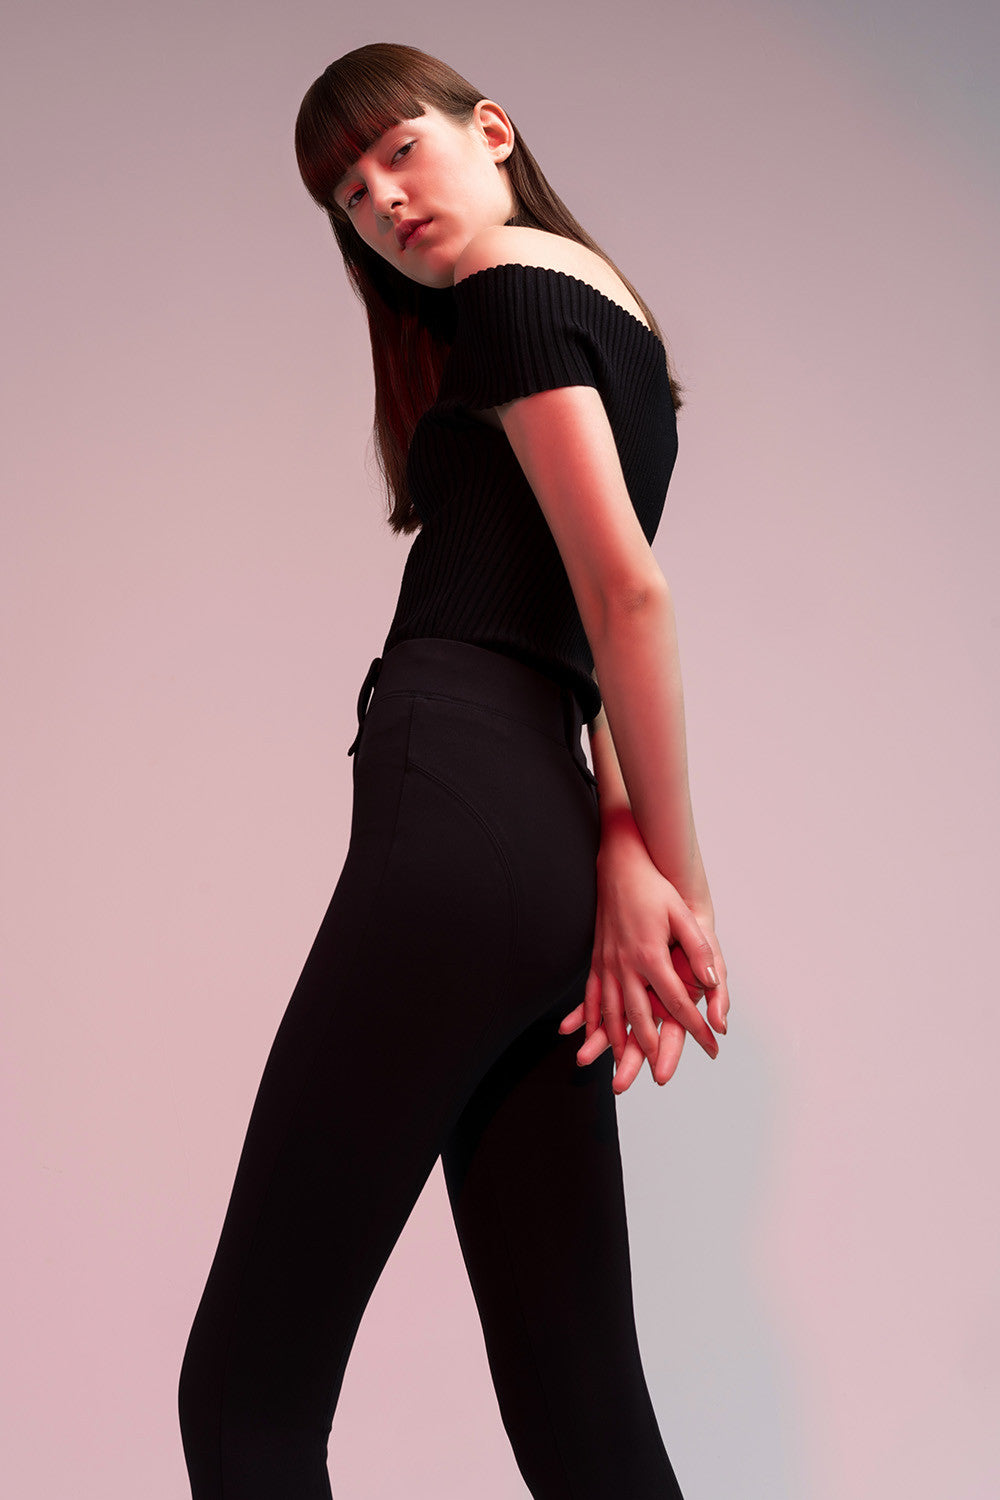 Stretch High Waist Black Leggings